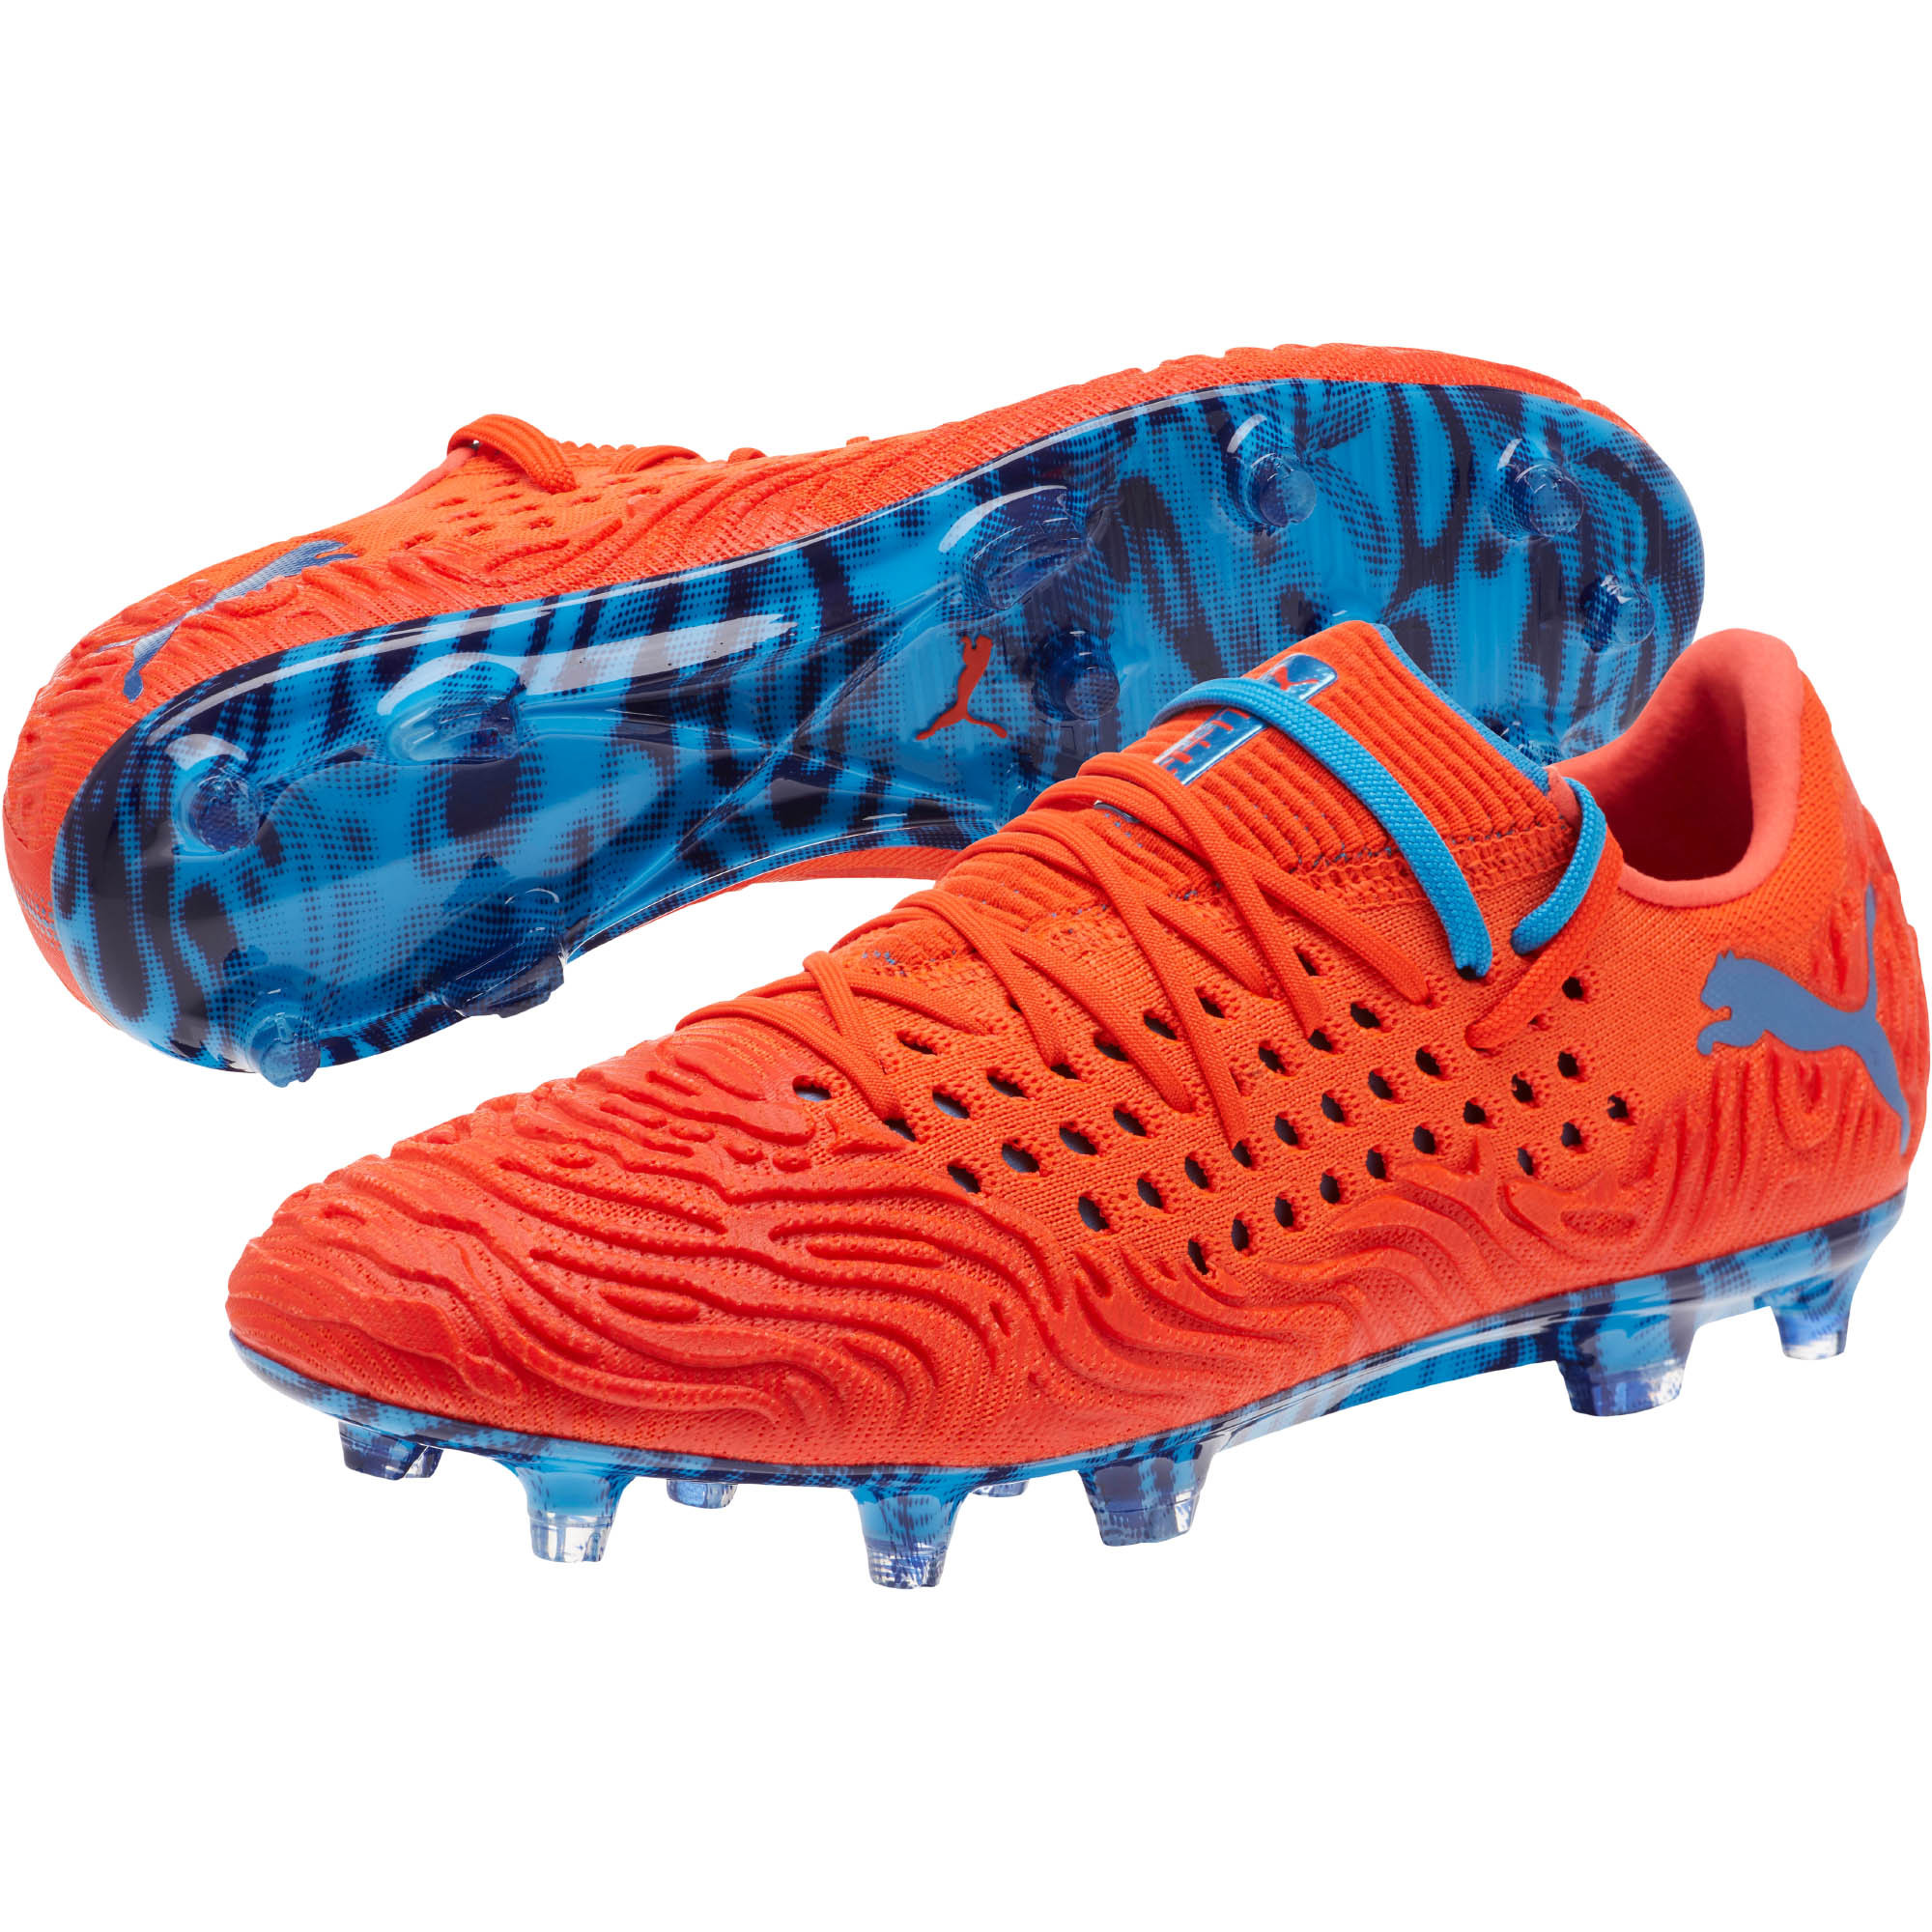 Various Sports · Go · Main page » Other Products » Football Boots » PUMA  FUTURE 19.1 NETFIT LOW FG AG   Shoes for Adults - Red ... 7bbc5a62a